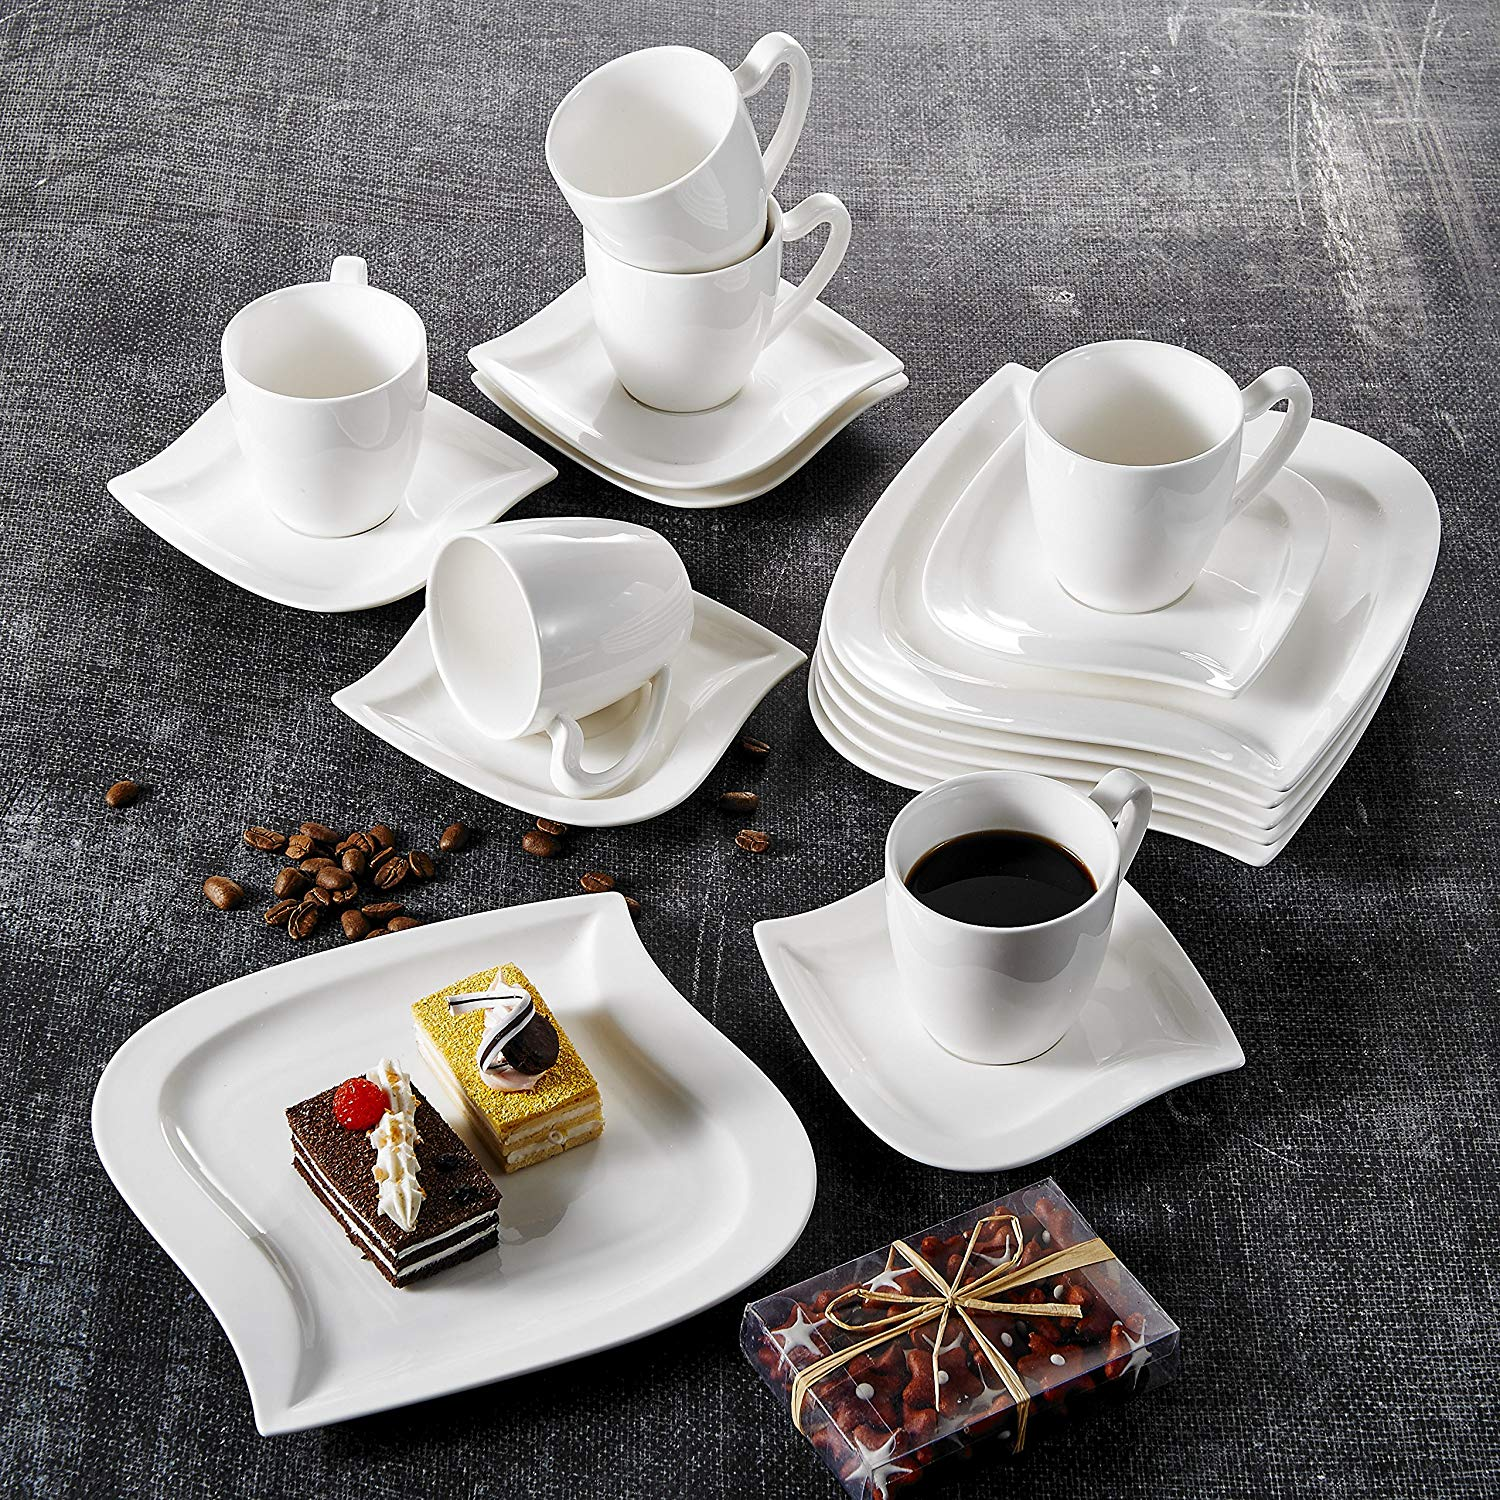 MALACASA Elvira 18-Piece White Porcelain Ceramic Dinner Combi-Set With 6-Piece Coffee Cups,Saucers And Dessert Plates